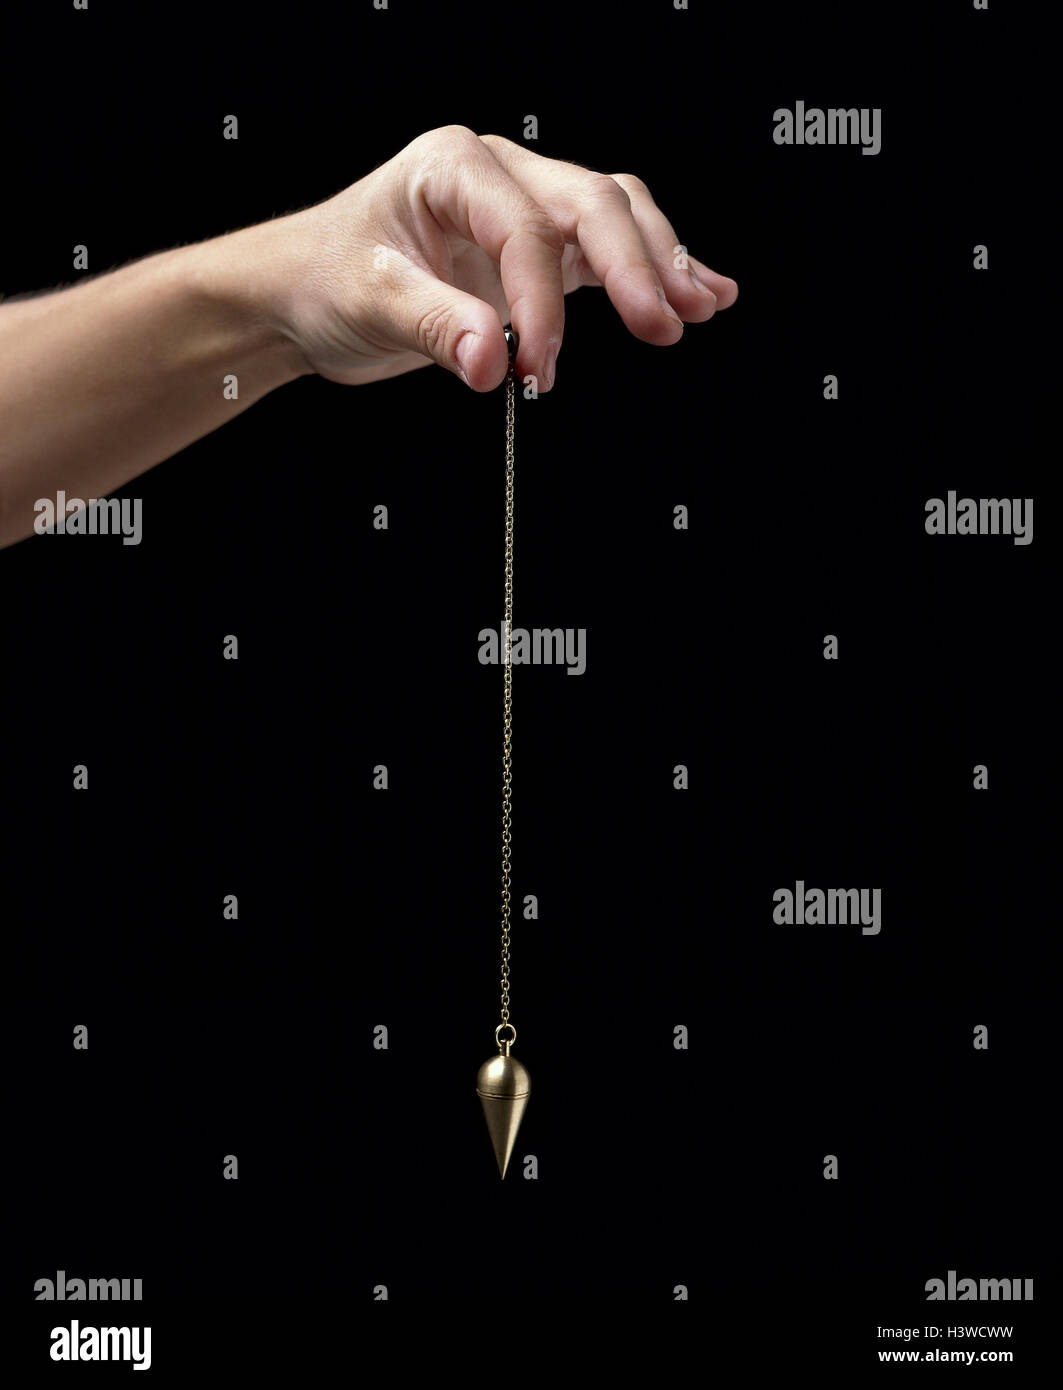 Esotericism, woman, detail, hand, hold, pendulums, spiritualism, occultism, siderisches pendulum, auspendeln, oscillate, - Stock Image